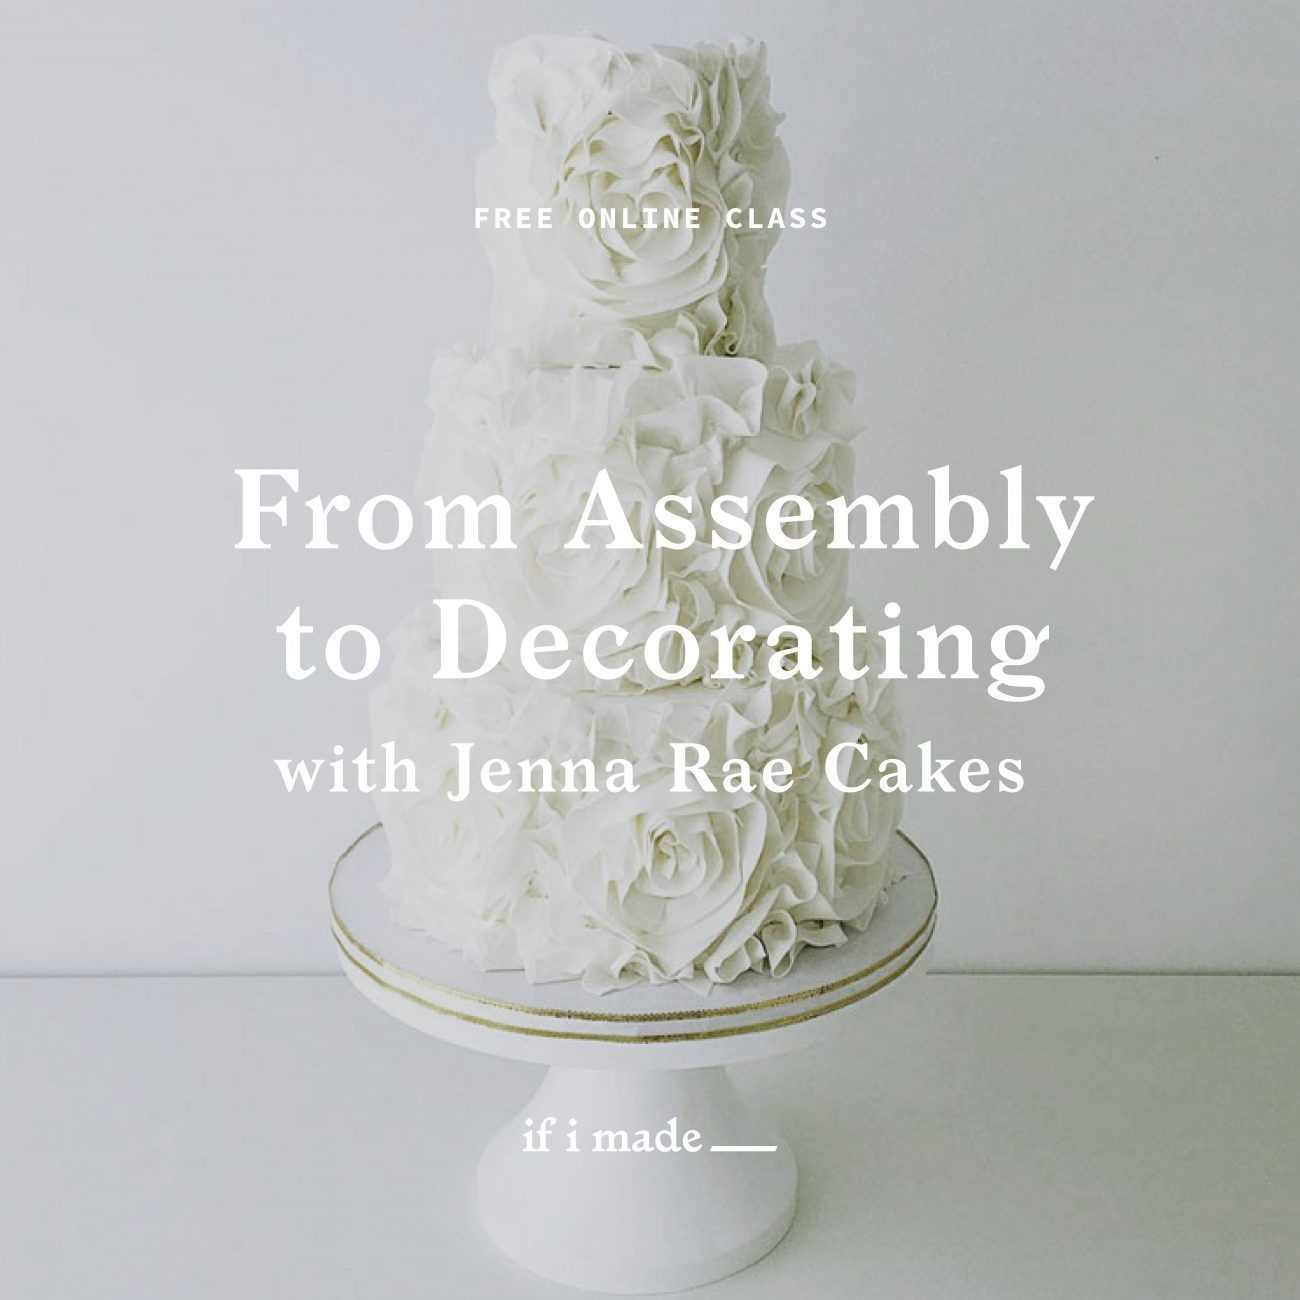 Free Online Class with Jenna Rae Cakes